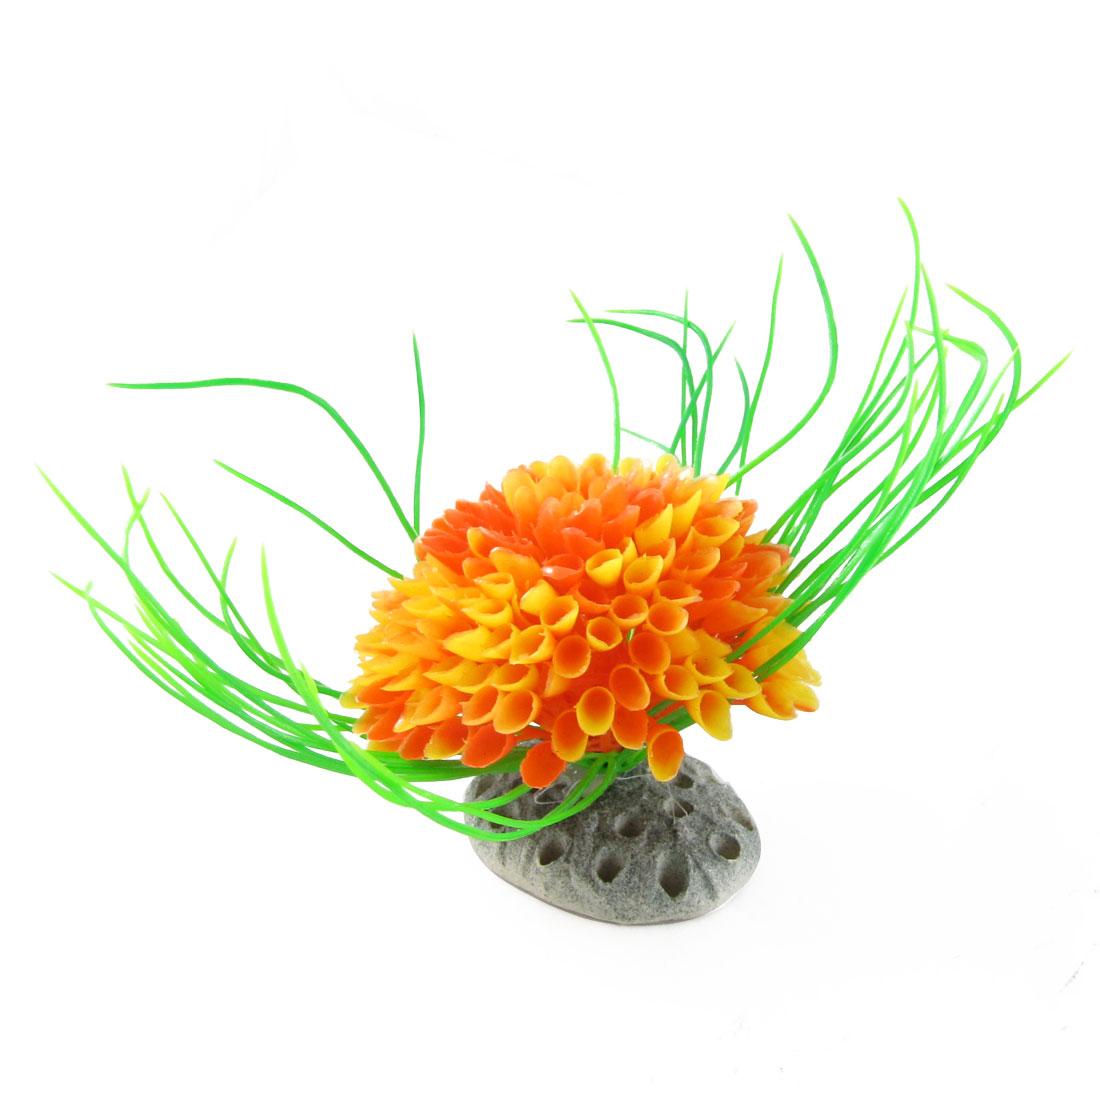 Plastic Green Leaf Accent Orange Flower Plants Ornament for Aquarium